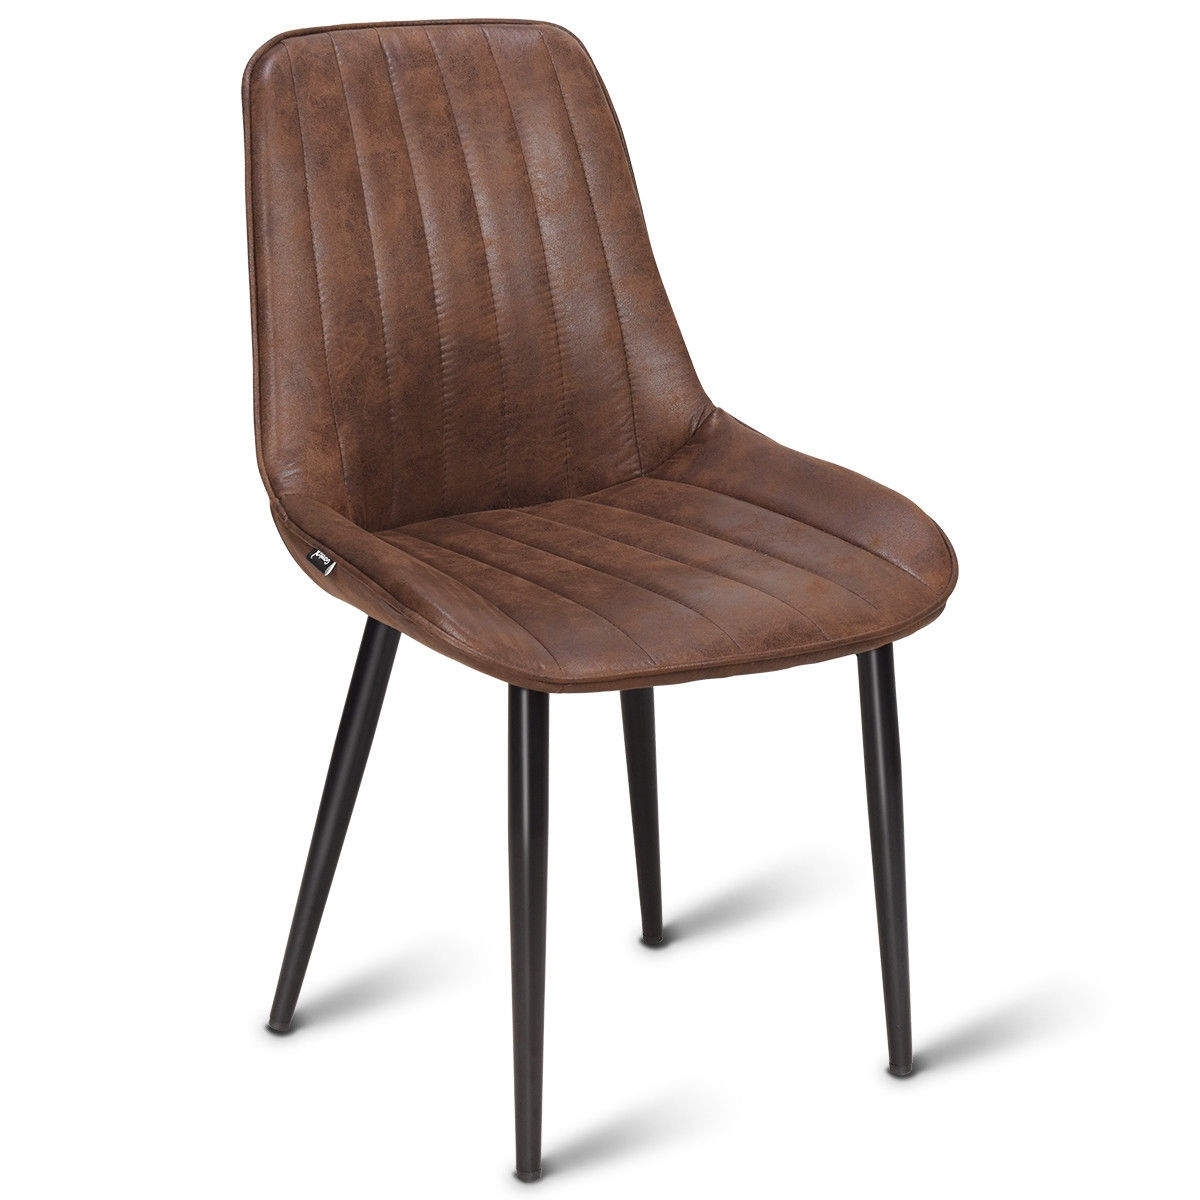 Modern Leisure Dining Chair Accent Armless Chair